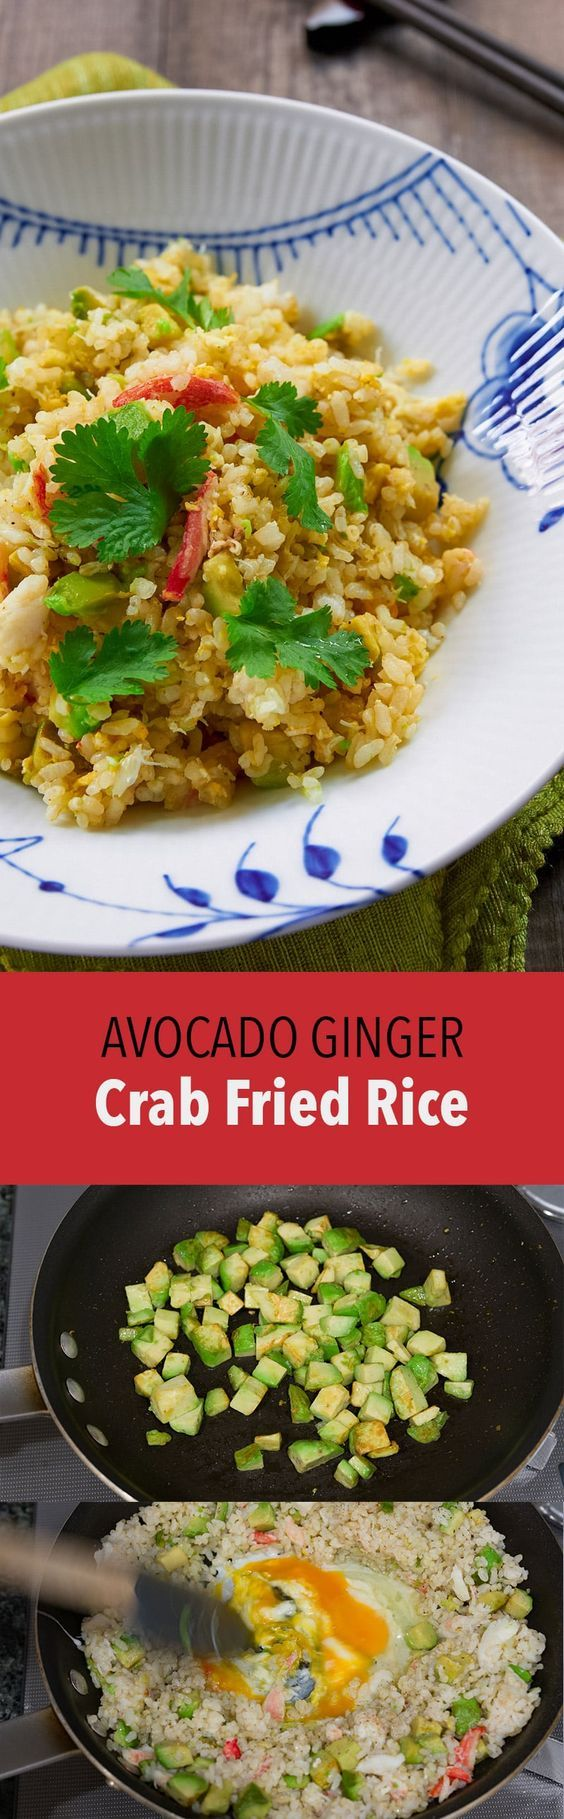 Creamy avocado and briny crab make this easy fried rice delicious and colorful!